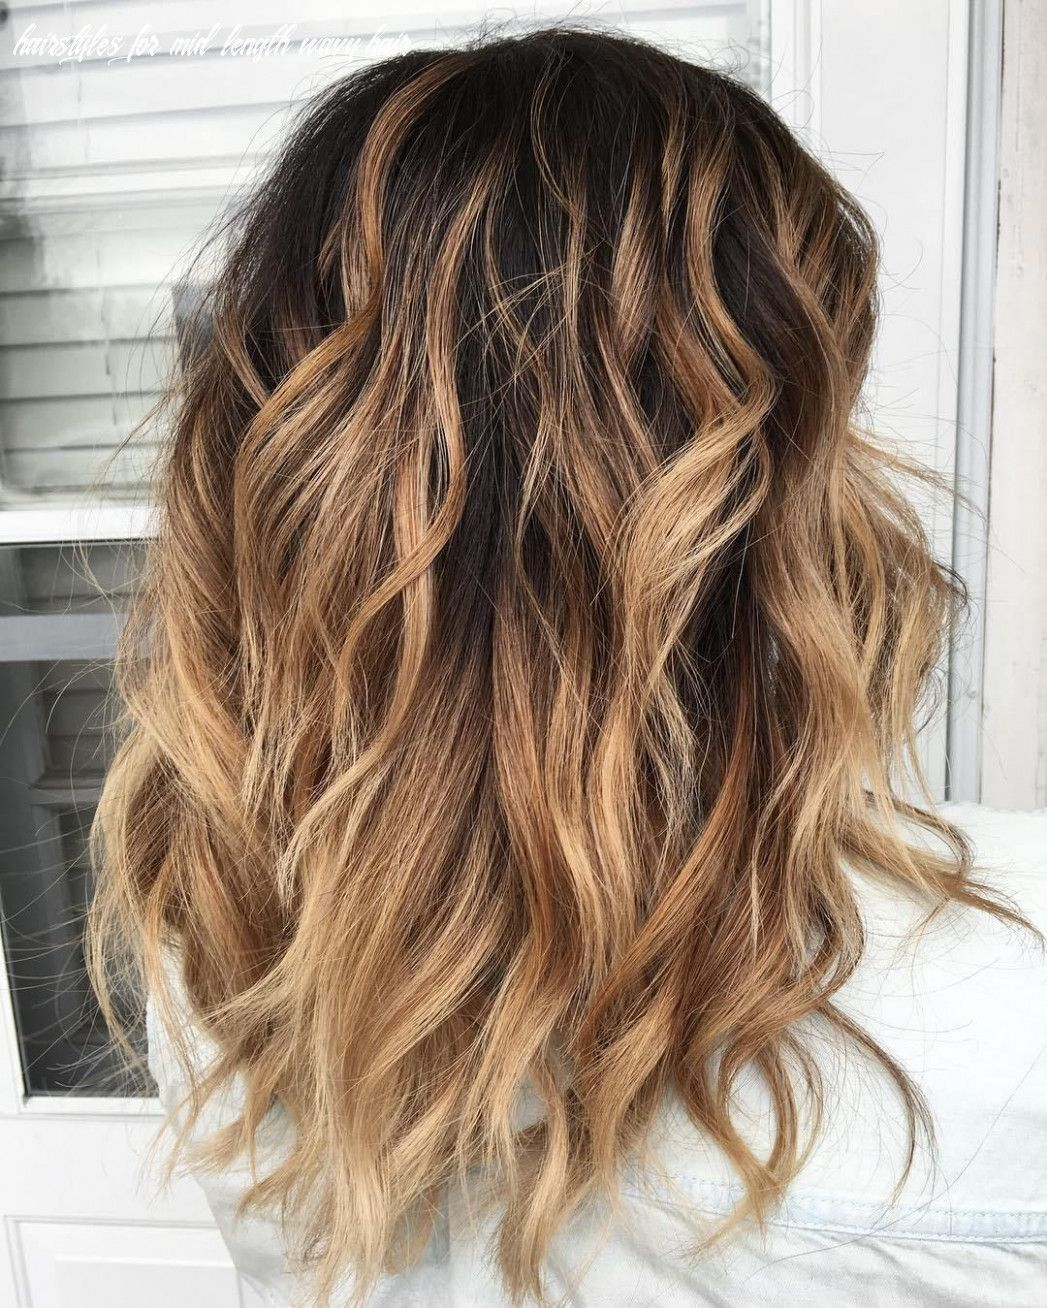 10 Hairstyles For Mid Length Wavy Hair Easyhairstylesformediumlengthwavyhair Easyhairstylesf In 2020 Wavy Hairstyles Medium Thick Wavy Hair Medium Length Curly Hair